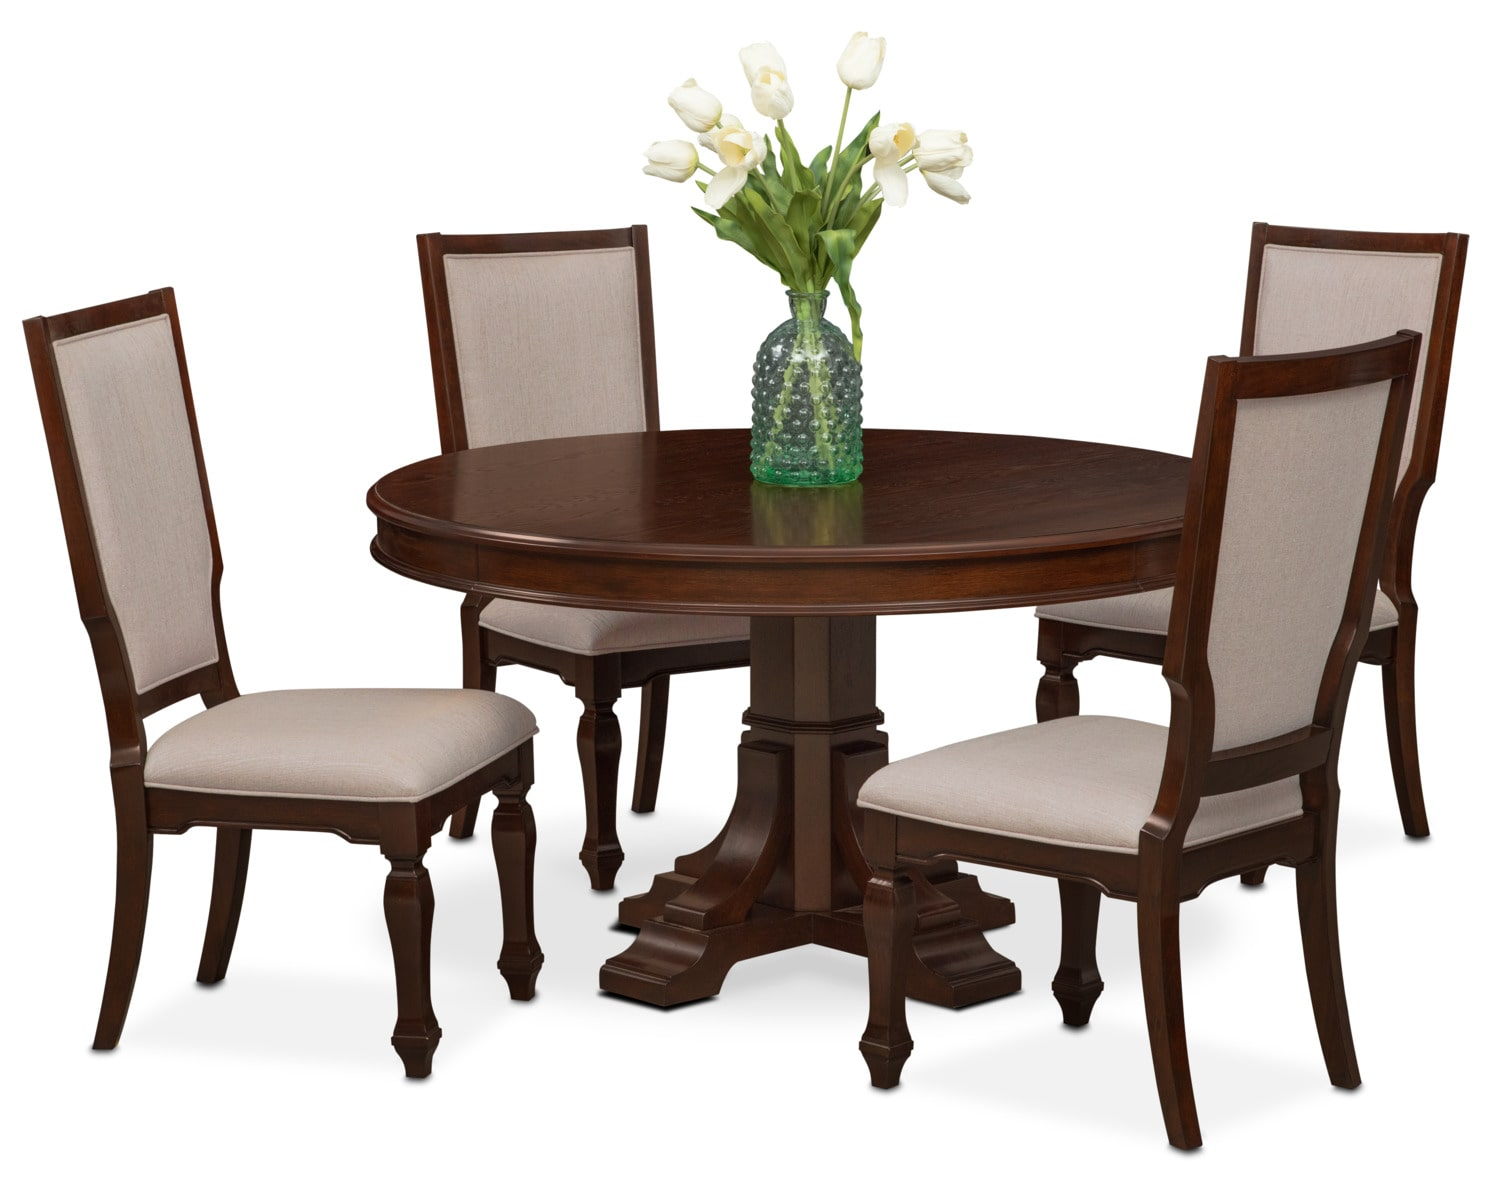 Espresso Dining Room Set Vienna Round Dining Table And 4 Upholstered Side Chairs